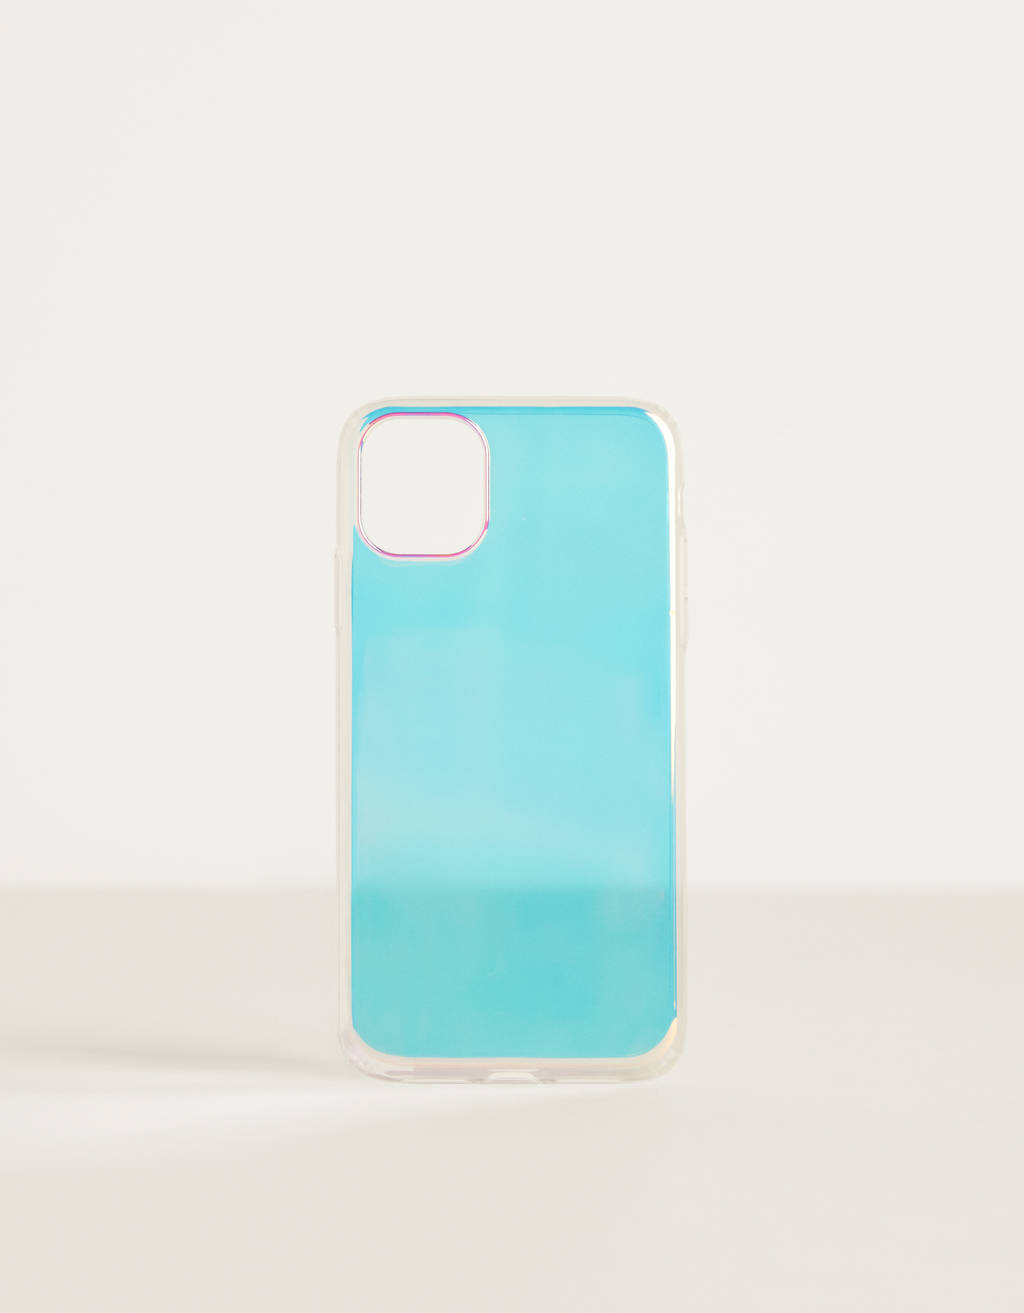 Iridescent iPhone 11 cover